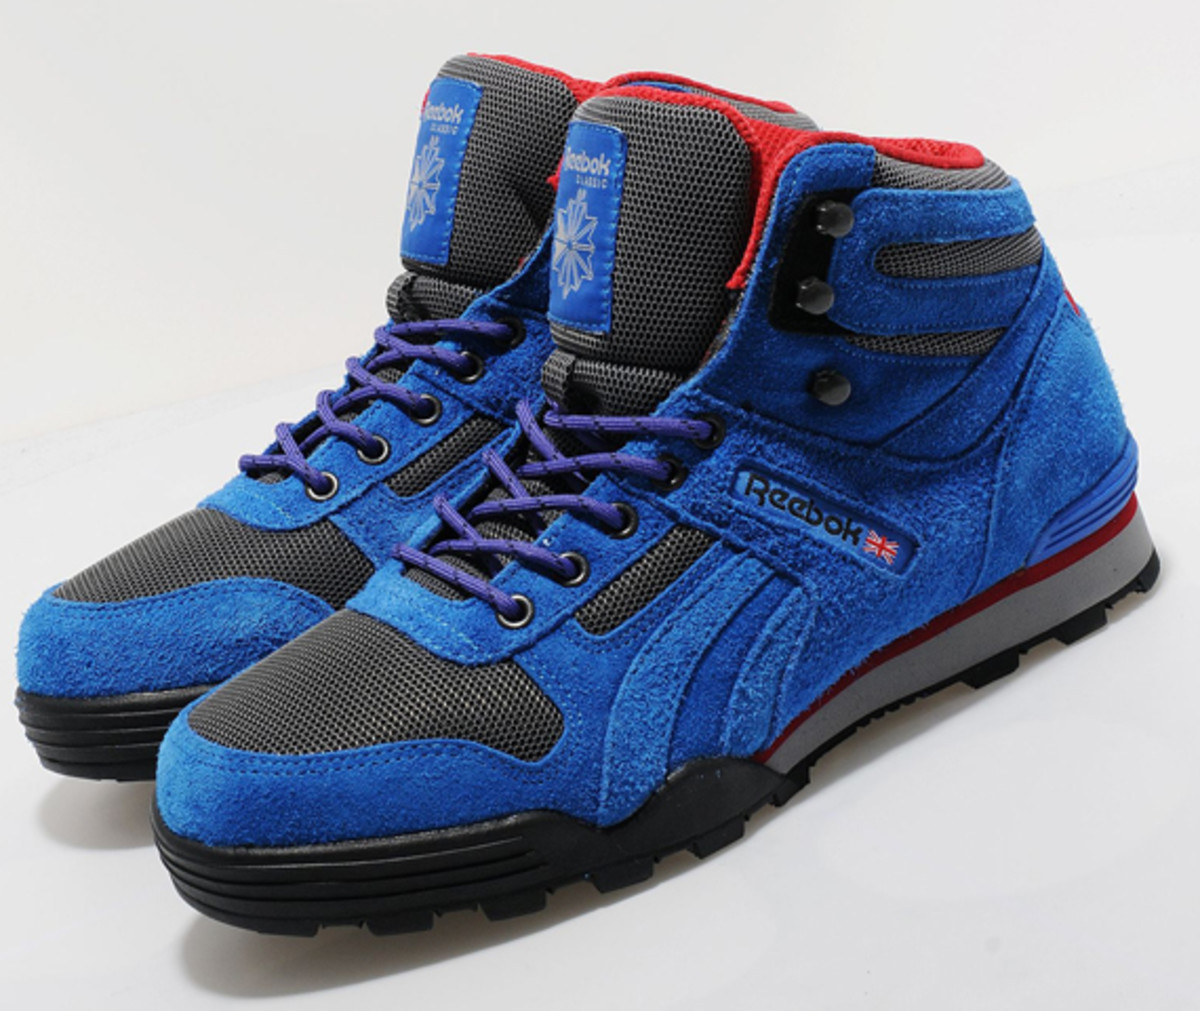 reebok-night-sky-mid-gore-tex-thinsulate-01